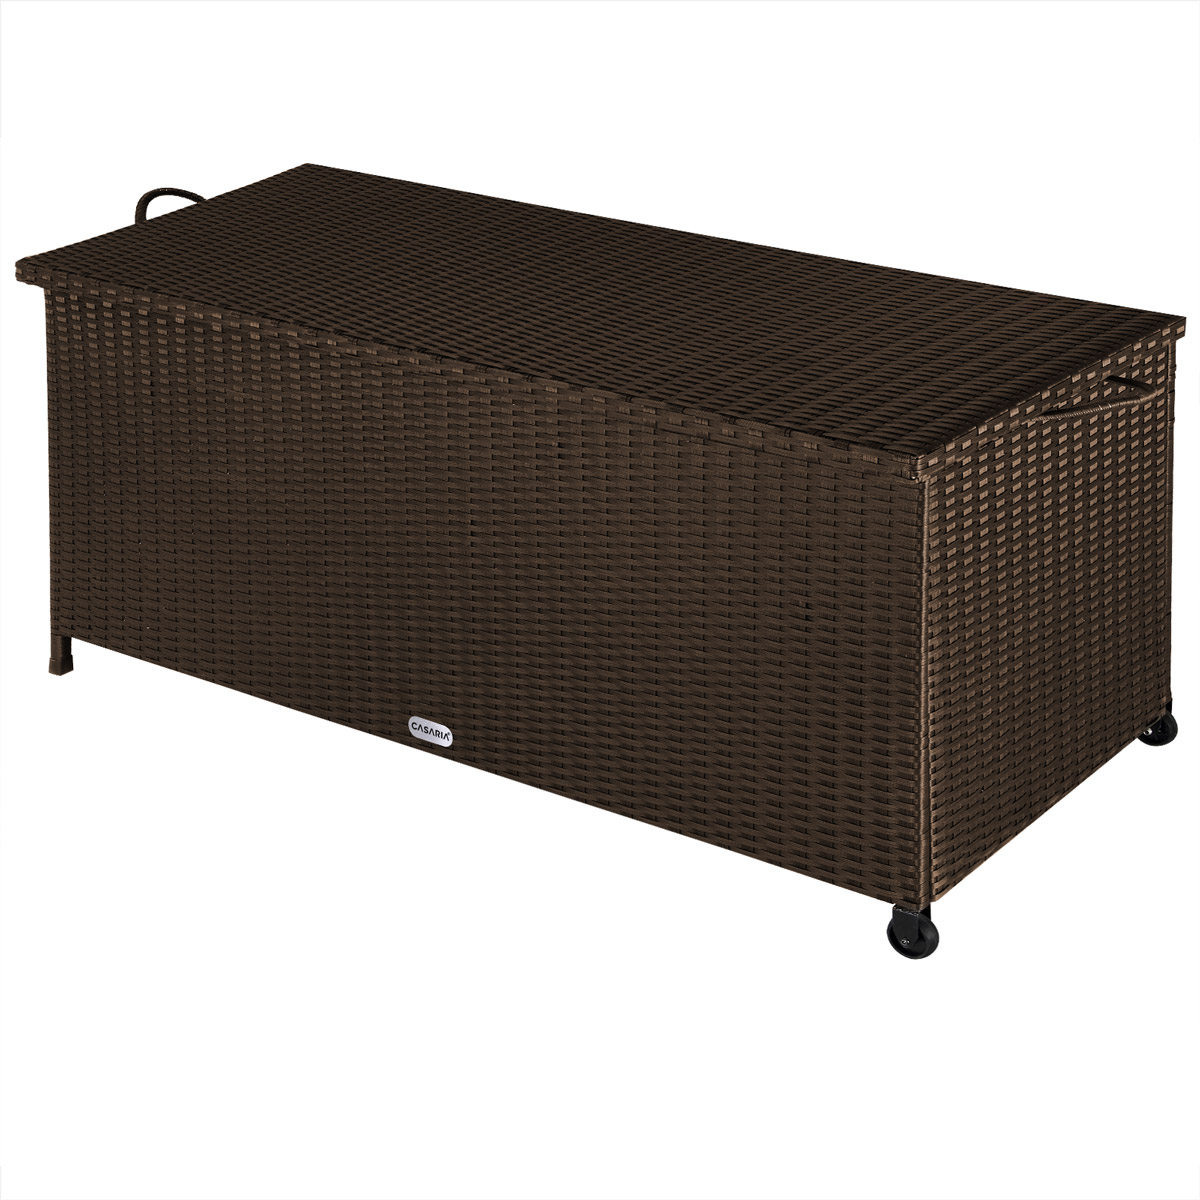 deuba auflagenbox polyrattan gartentruhe gartenbox. Black Bedroom Furniture Sets. Home Design Ideas